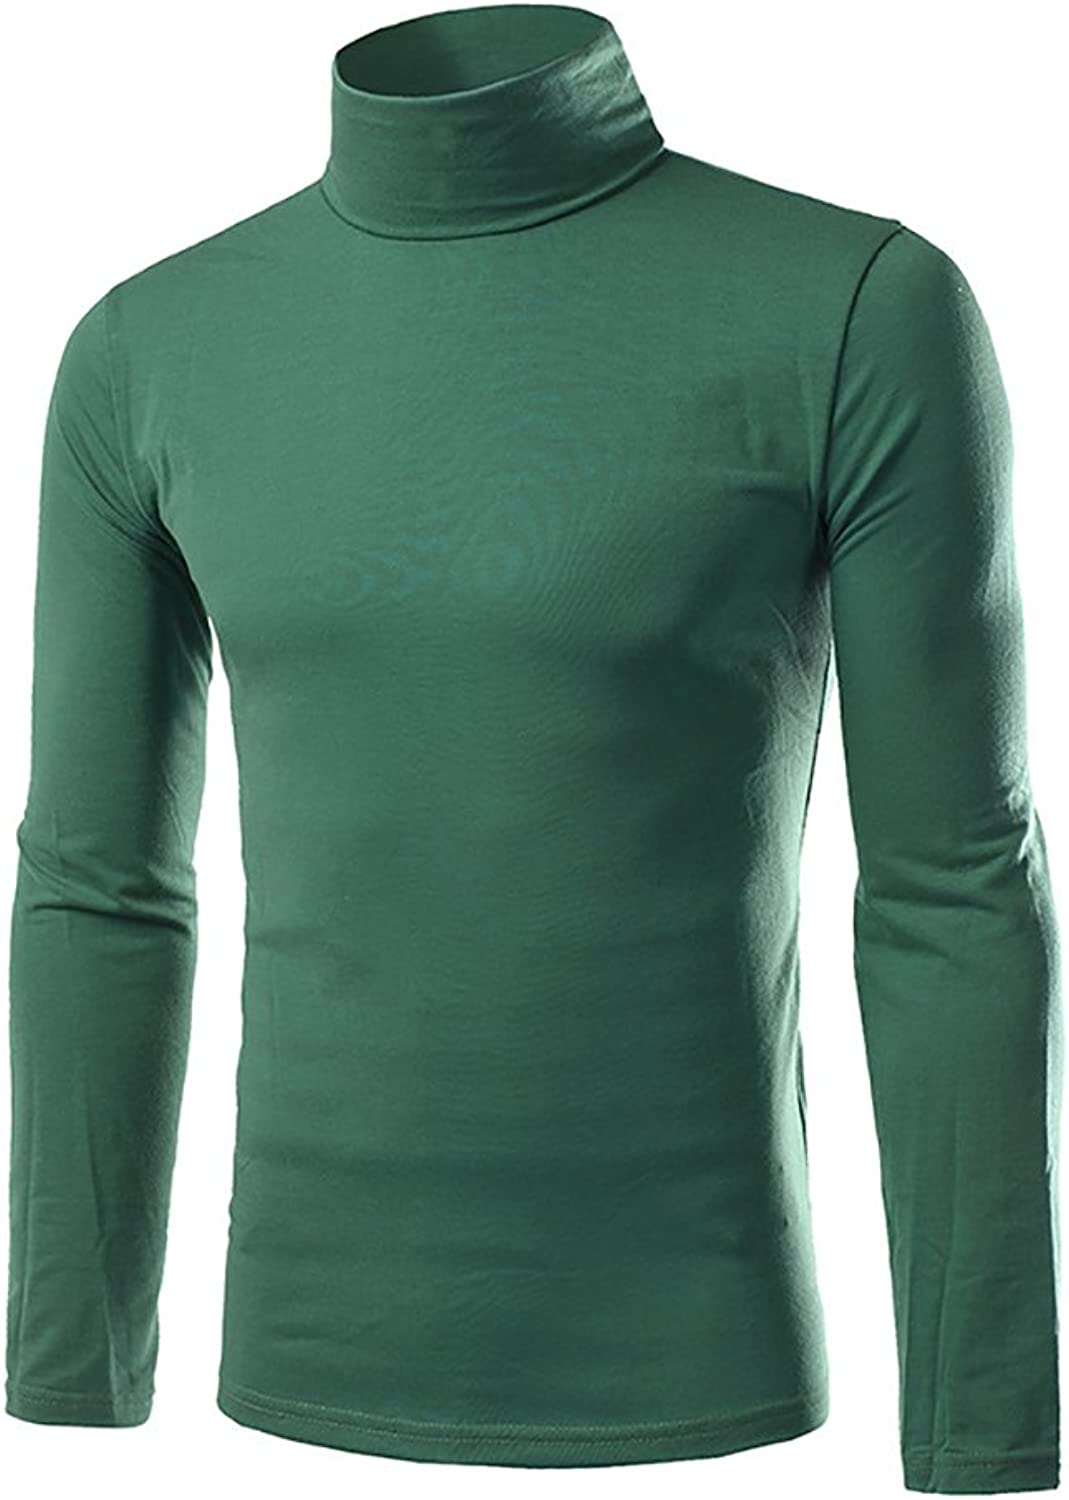 Men's LongSleeved Tops HighNecked Fashion T Shirts Slim Fit Casual Solid colord Clothes White, Red, Green, Black, blueee (color   Green, Size   XL)